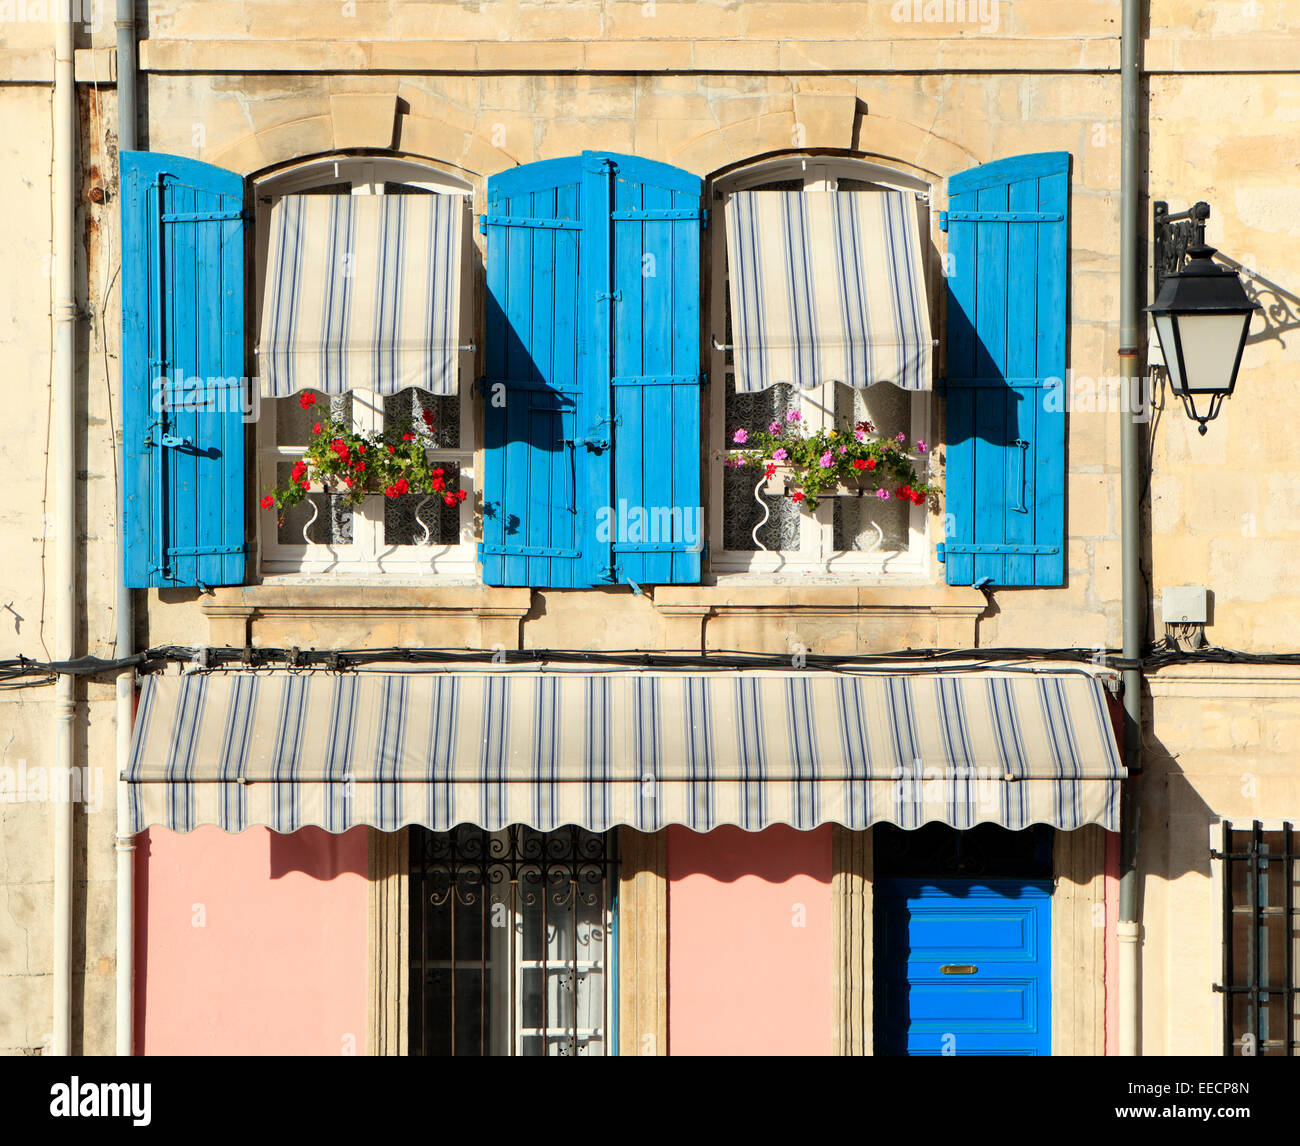 Typical French Provence Style Windows With Blue Shutters And